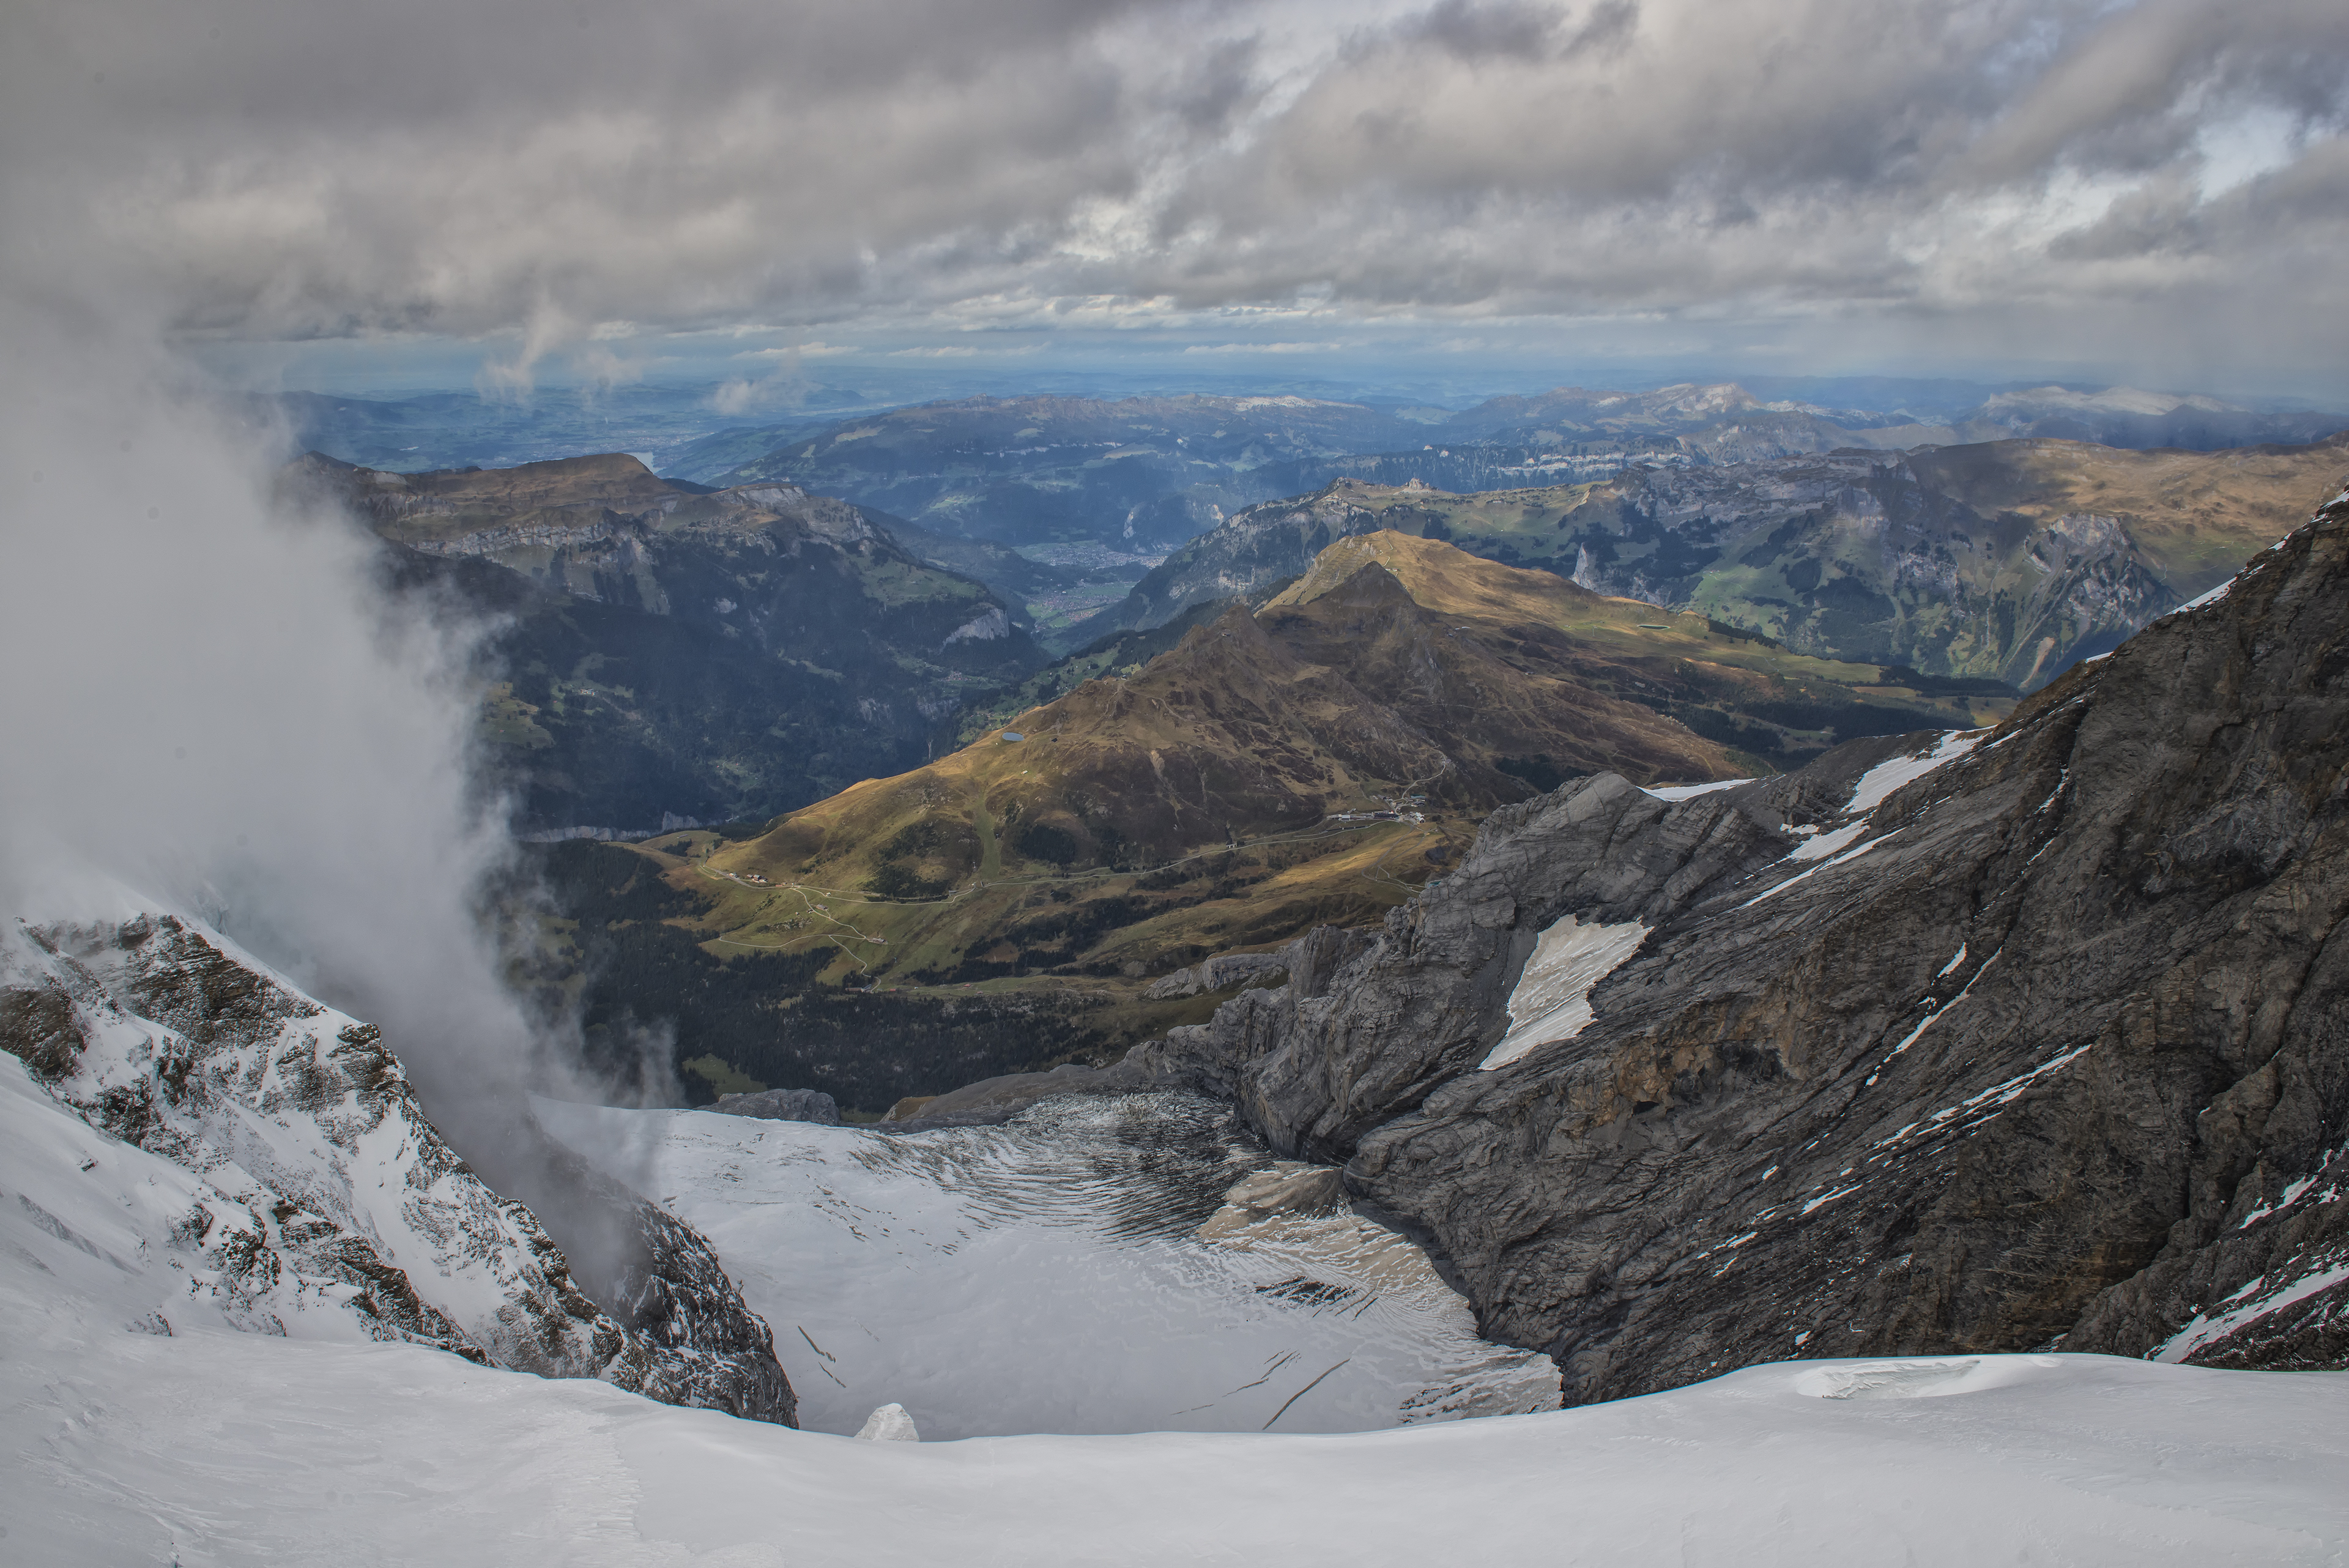 Another view from Jungfraujoch